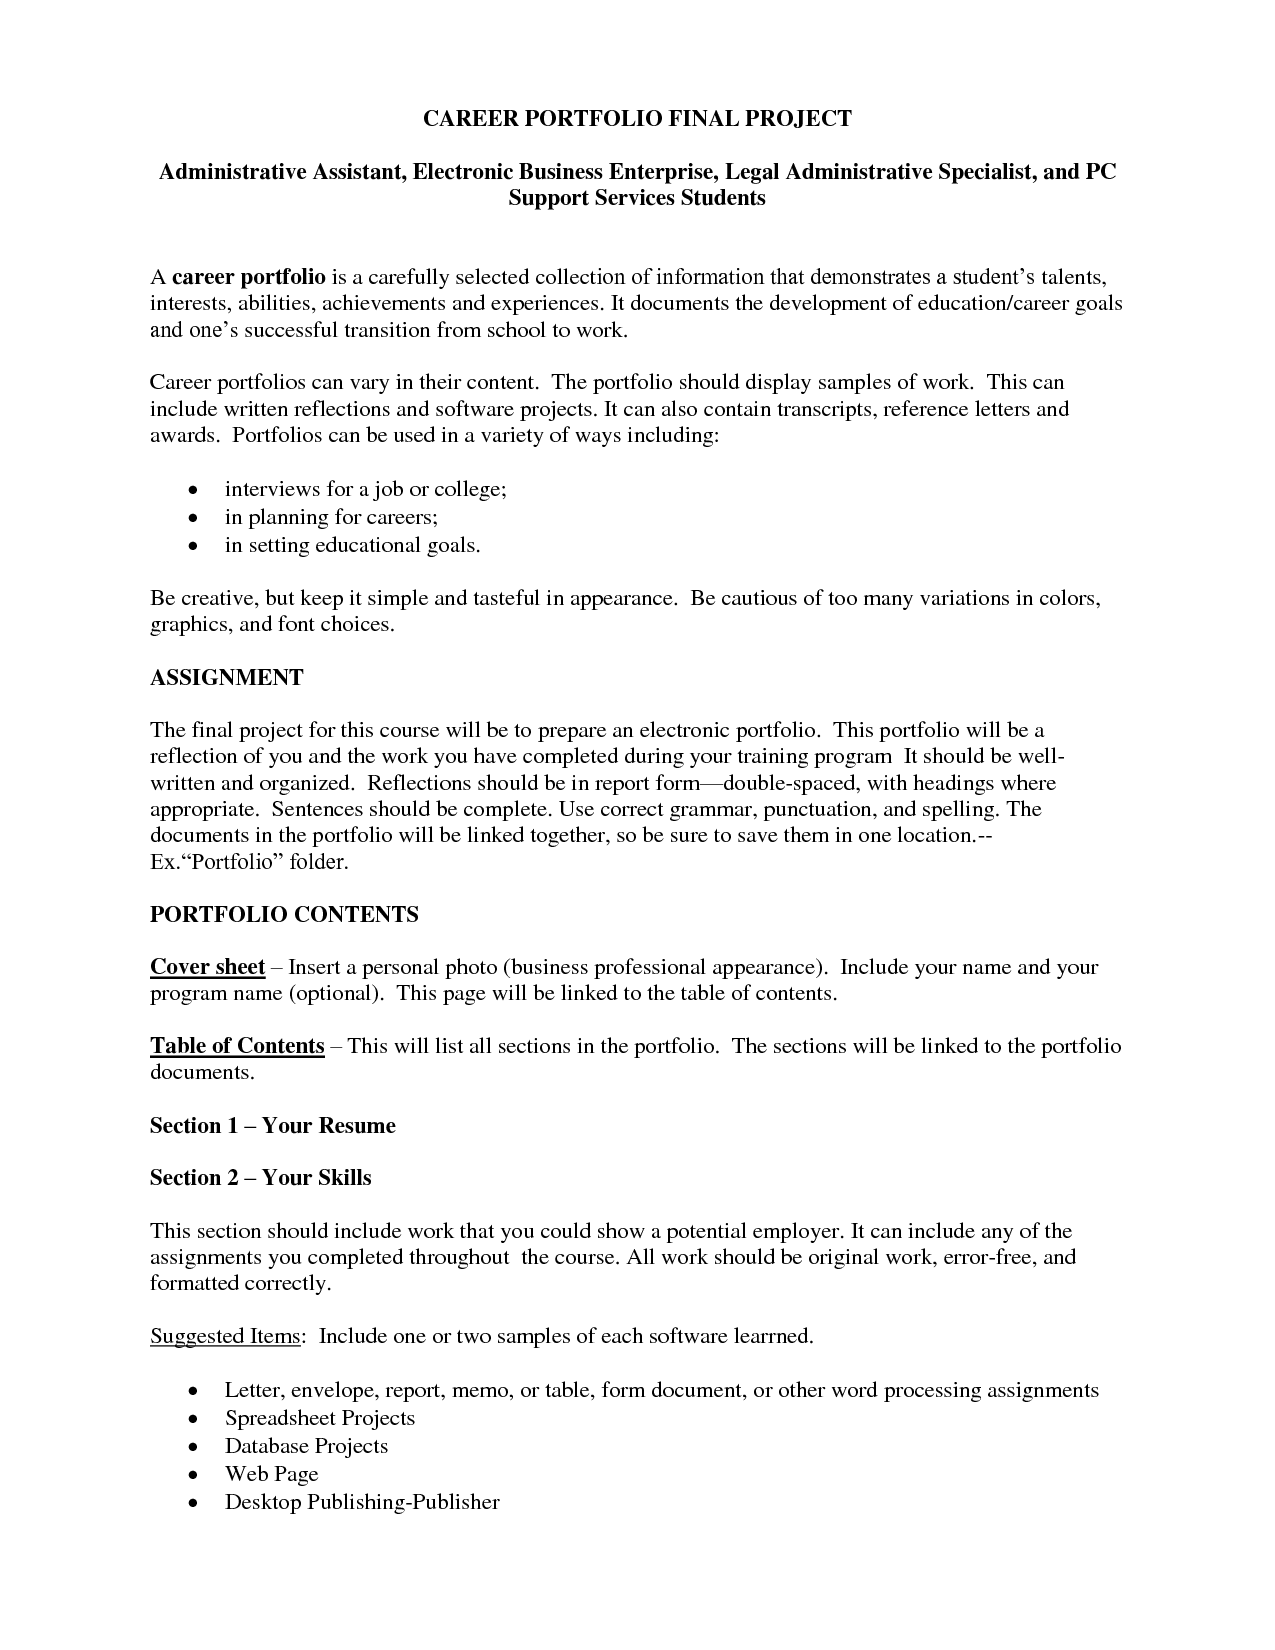 Resume Templates Free Legal Administrative Resume Samples  Httpersumelegal